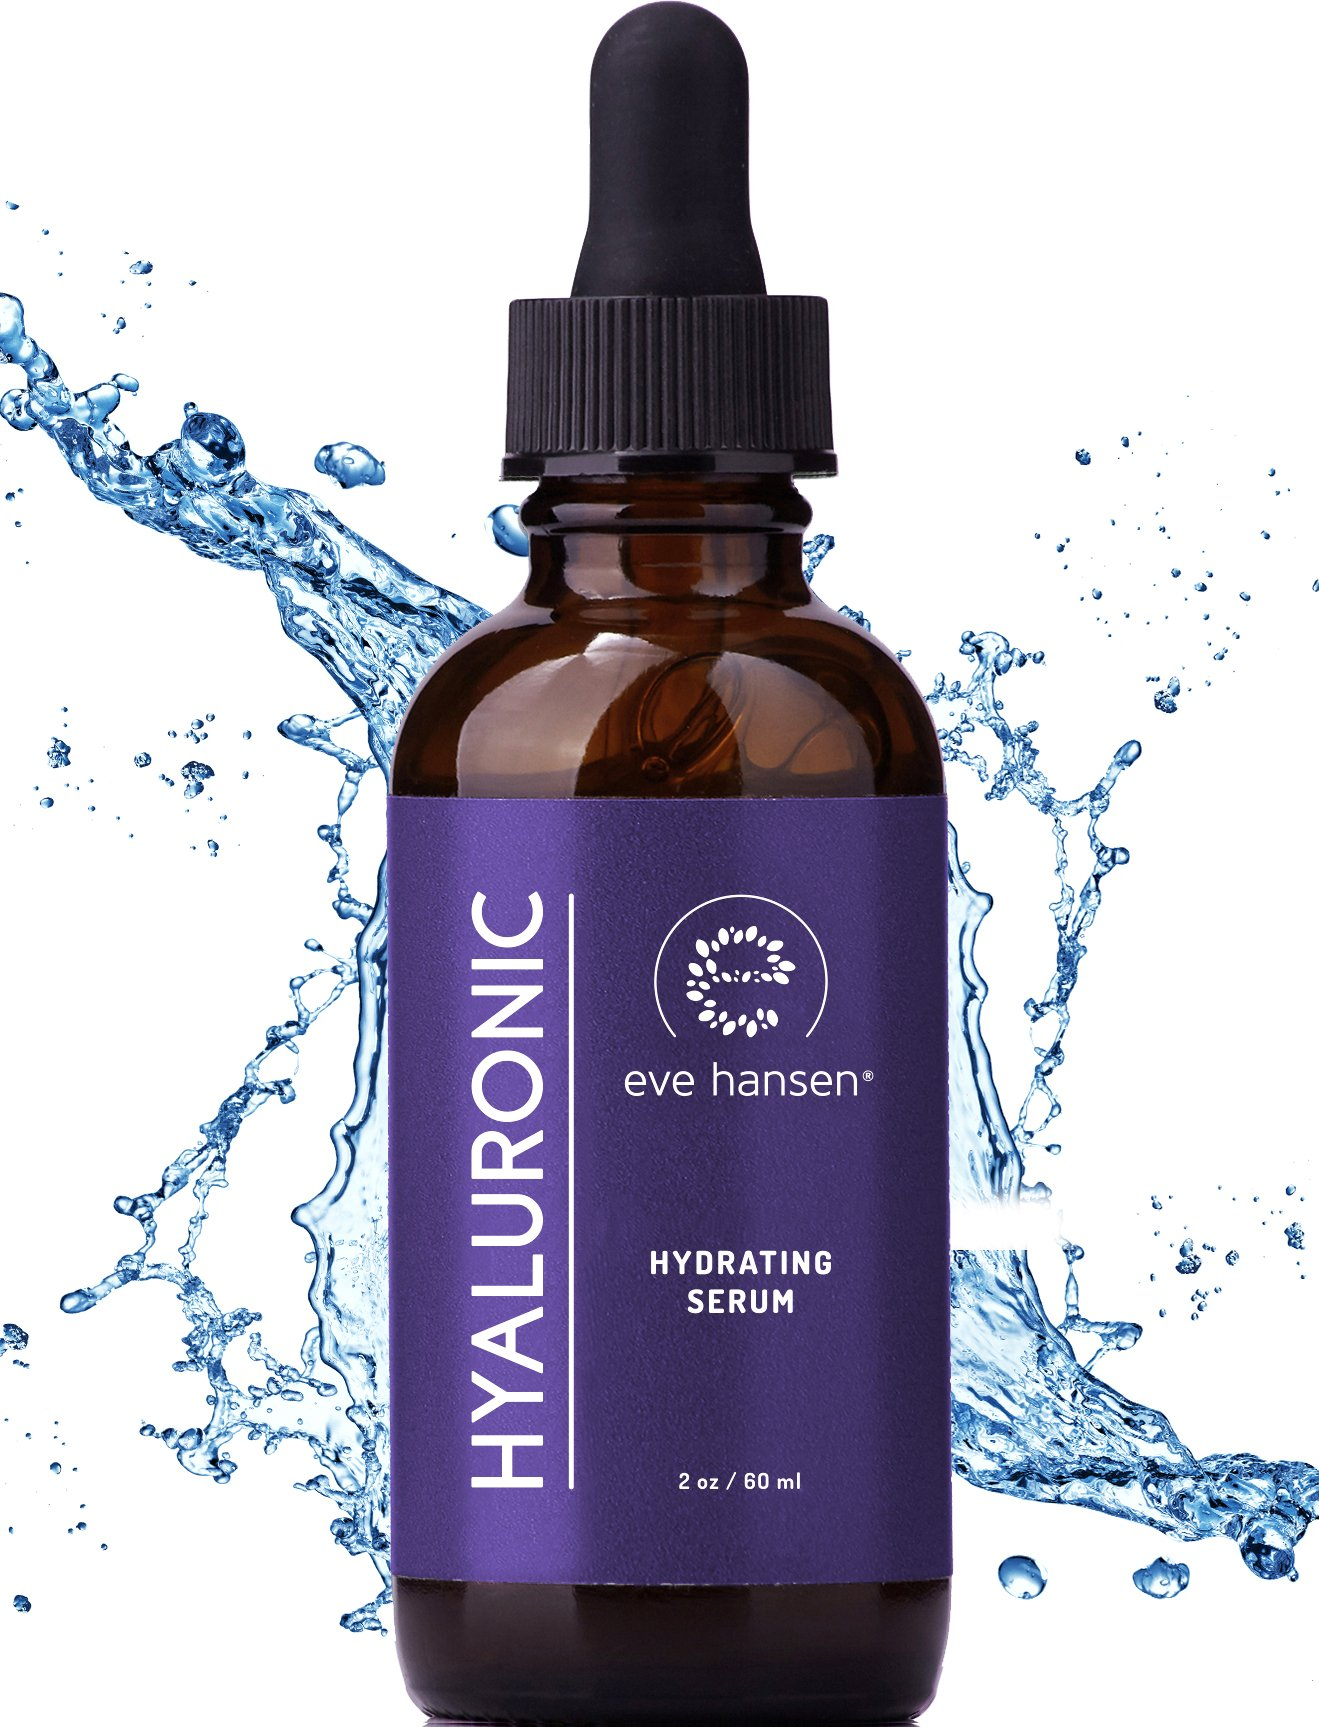 Pure Hyaluronic Acid Serum 2 Ounces by Eve Hansen-Hydrating Serum, Wrinkle Filler and Plumper. Experience Intense Moisture, Hydration and Anti Wrinkle Serum Benefits. Vegan, Natural and Cruelty Free.